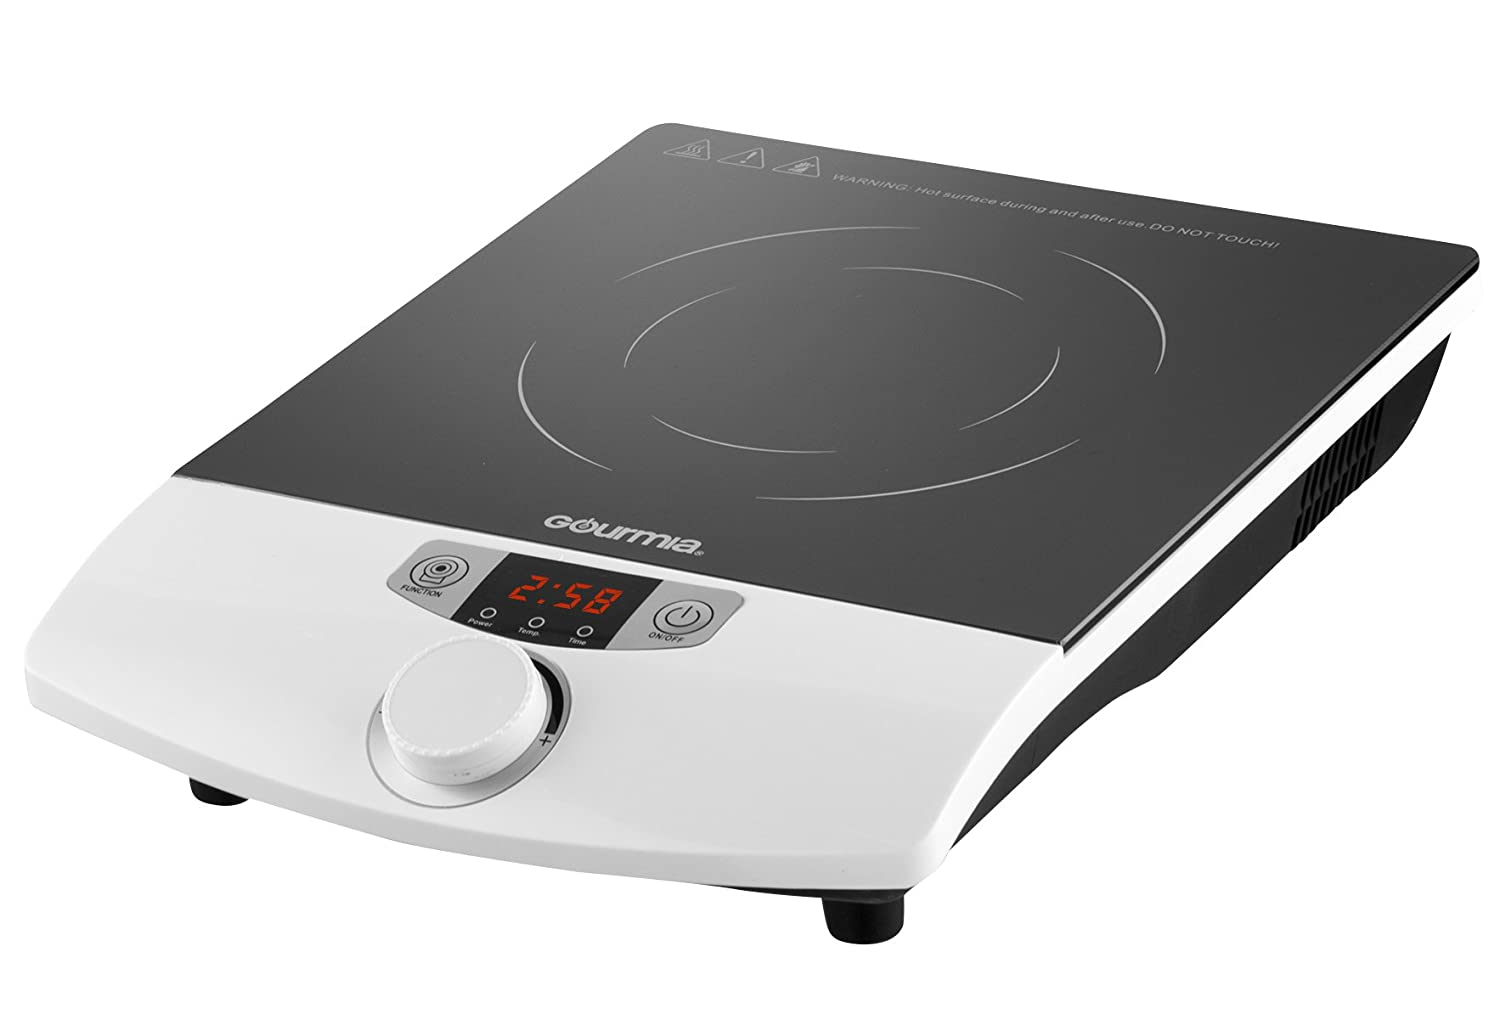 Gourmia GIC100 Multifunction Portable Induction Cooker - Cooktop Countertop Burner - SmartSense Auto Detection, Timer, Temperature & 8 Power Level Controls - 1800W